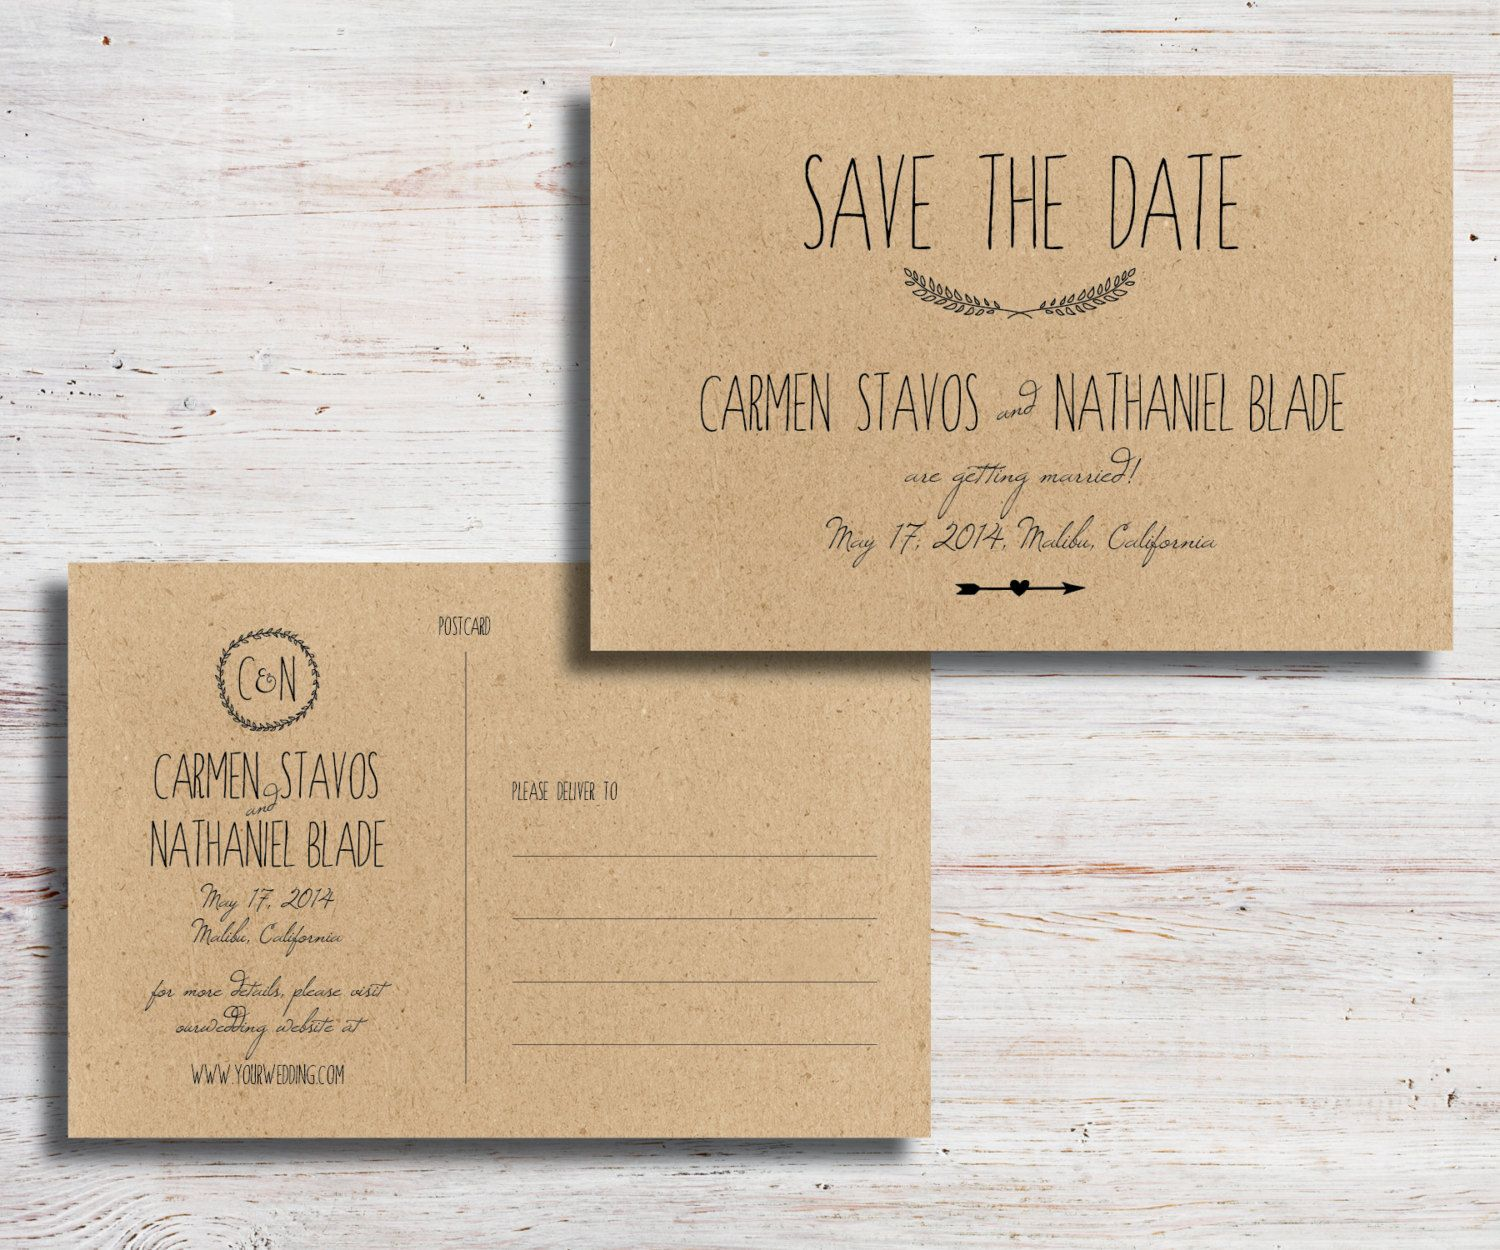 Rustic printable save the date postcard diy by simplyfetchingpaper